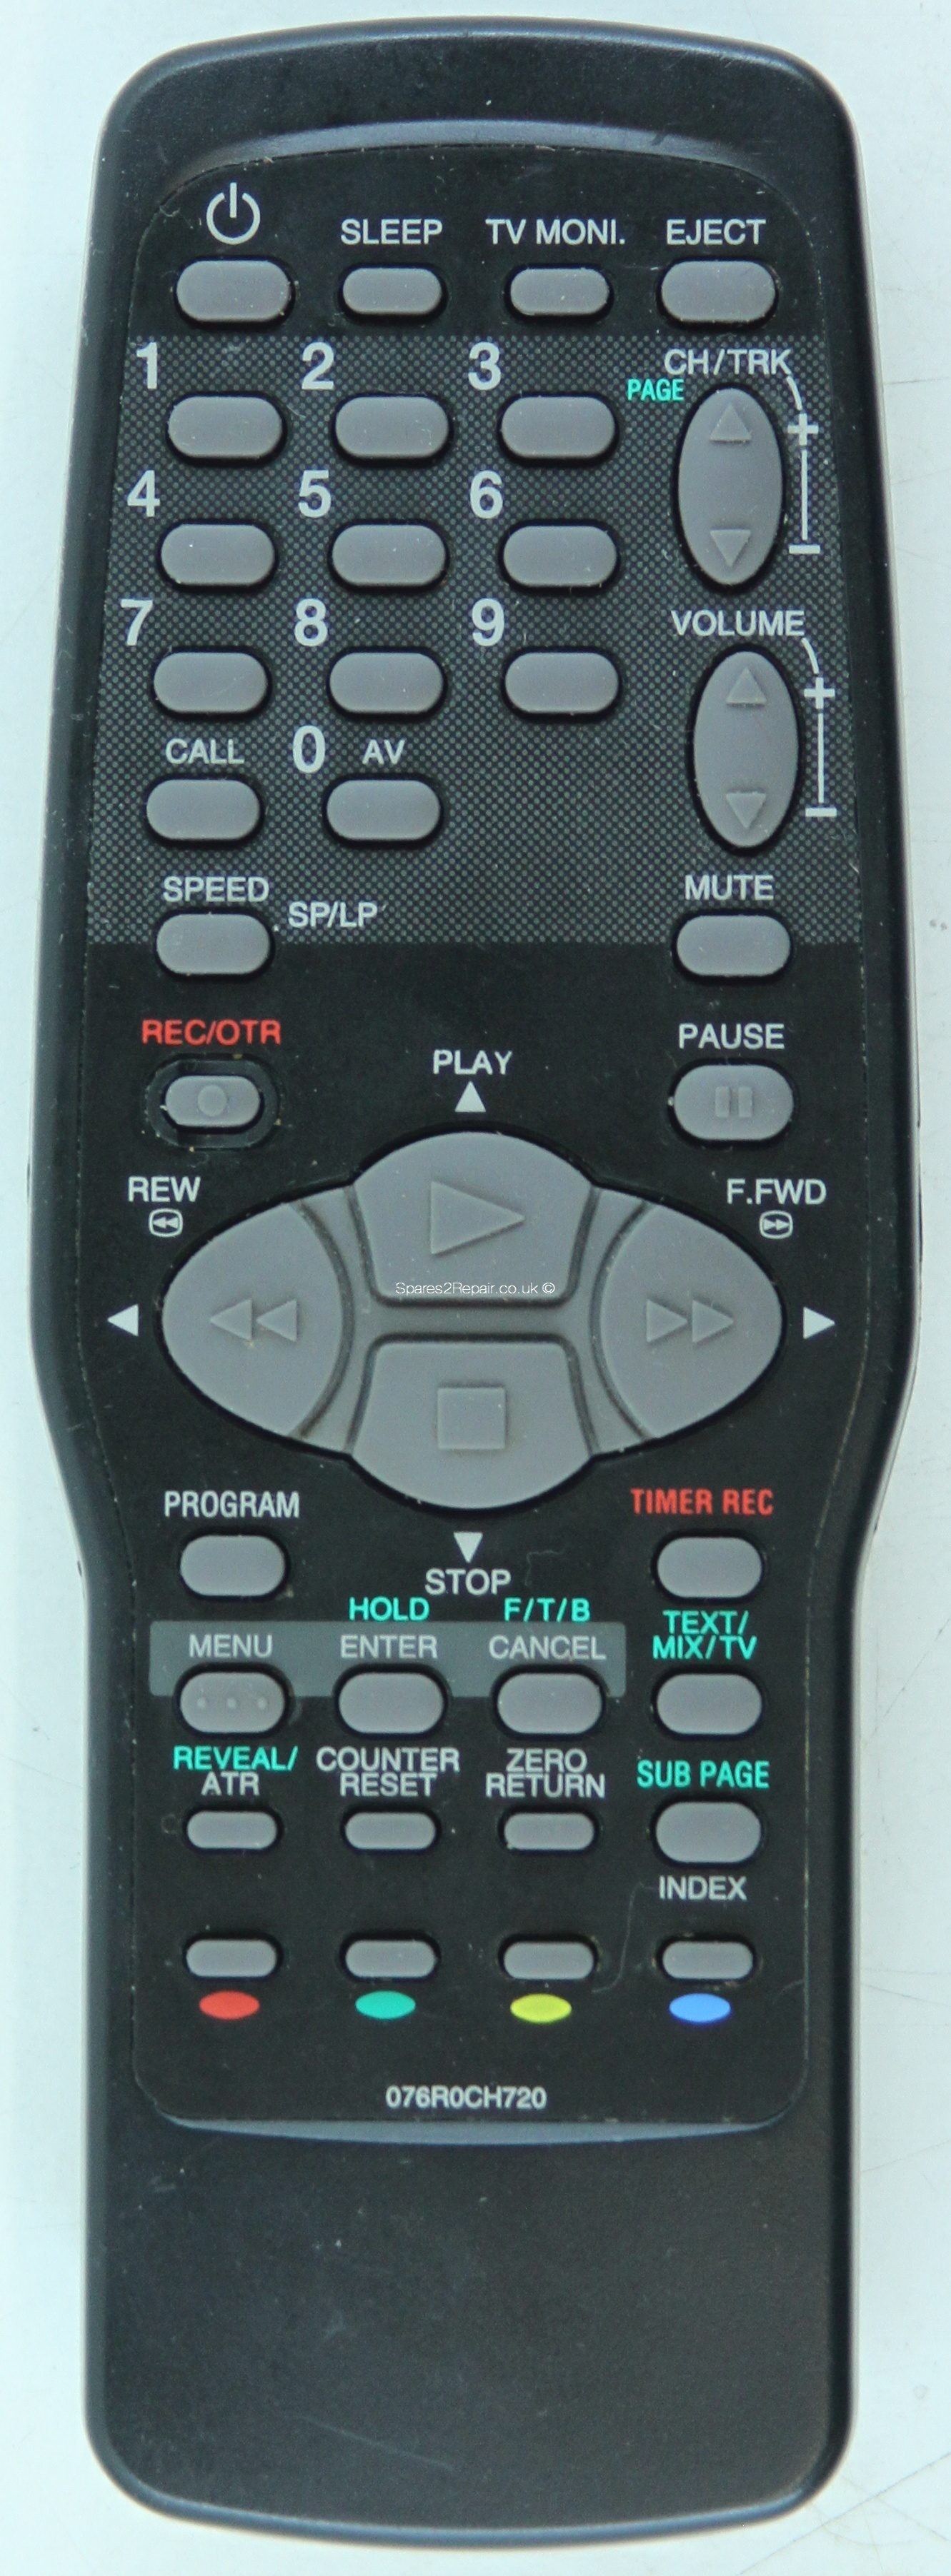 Bush 076R0CH720 Remote Control (Original)